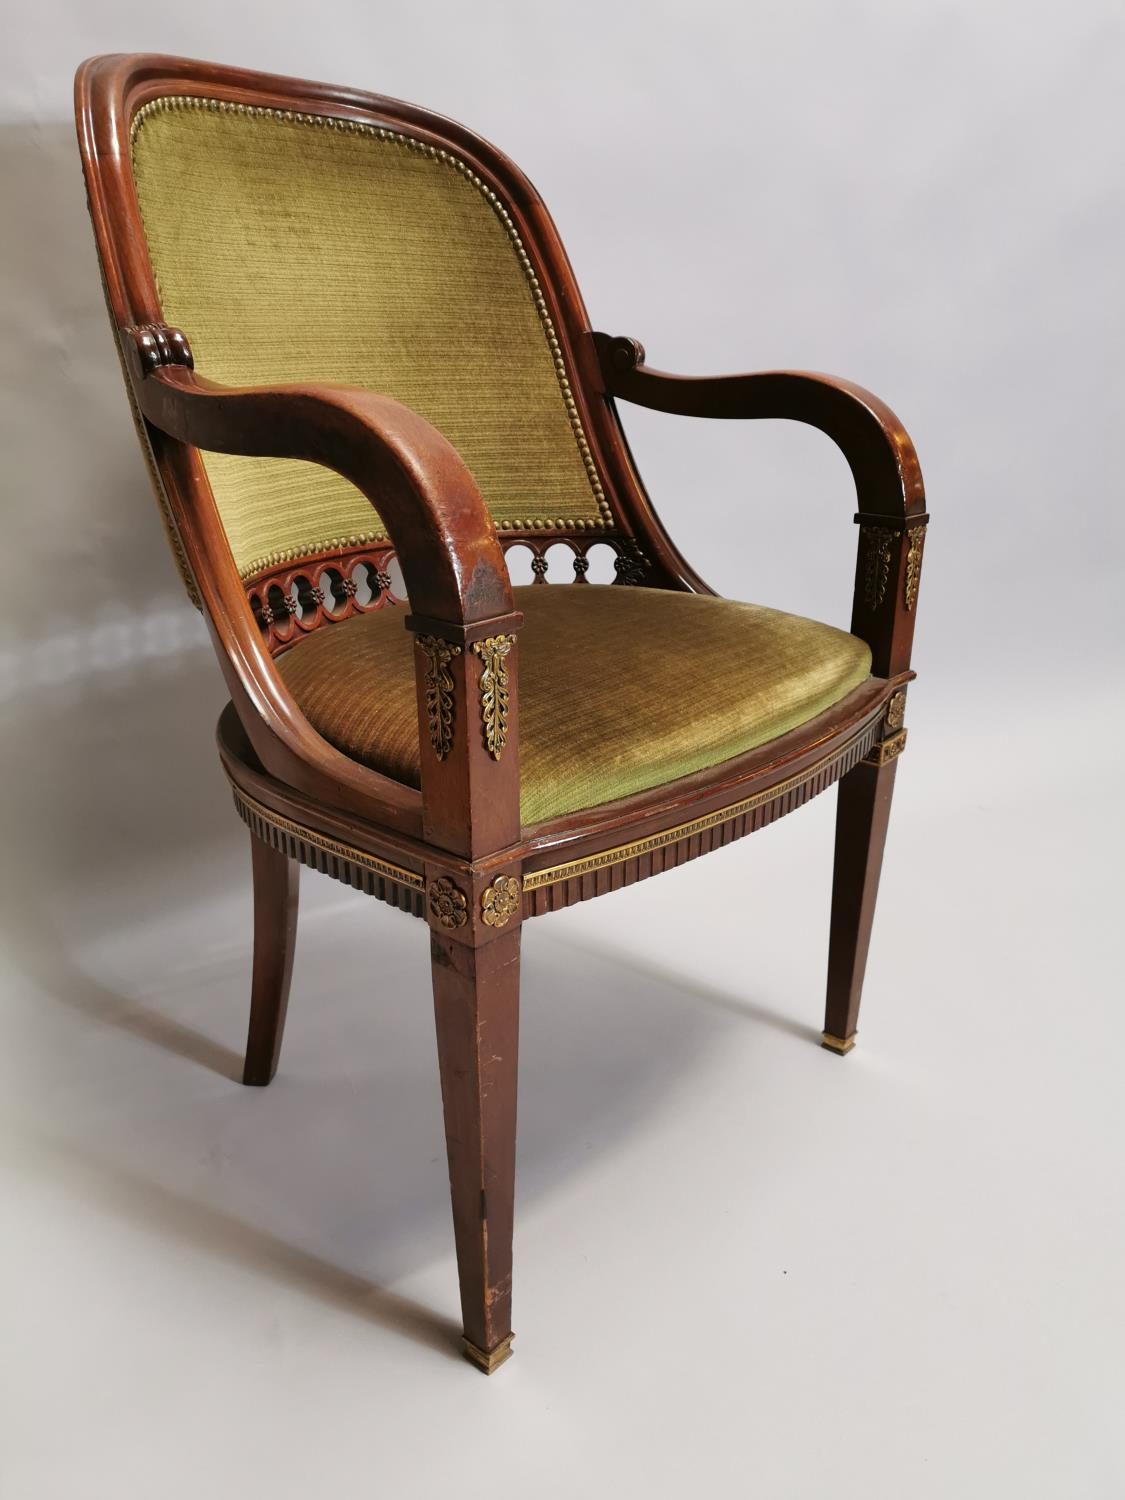 Upholstered mahogany desk chair - Image 6 of 8